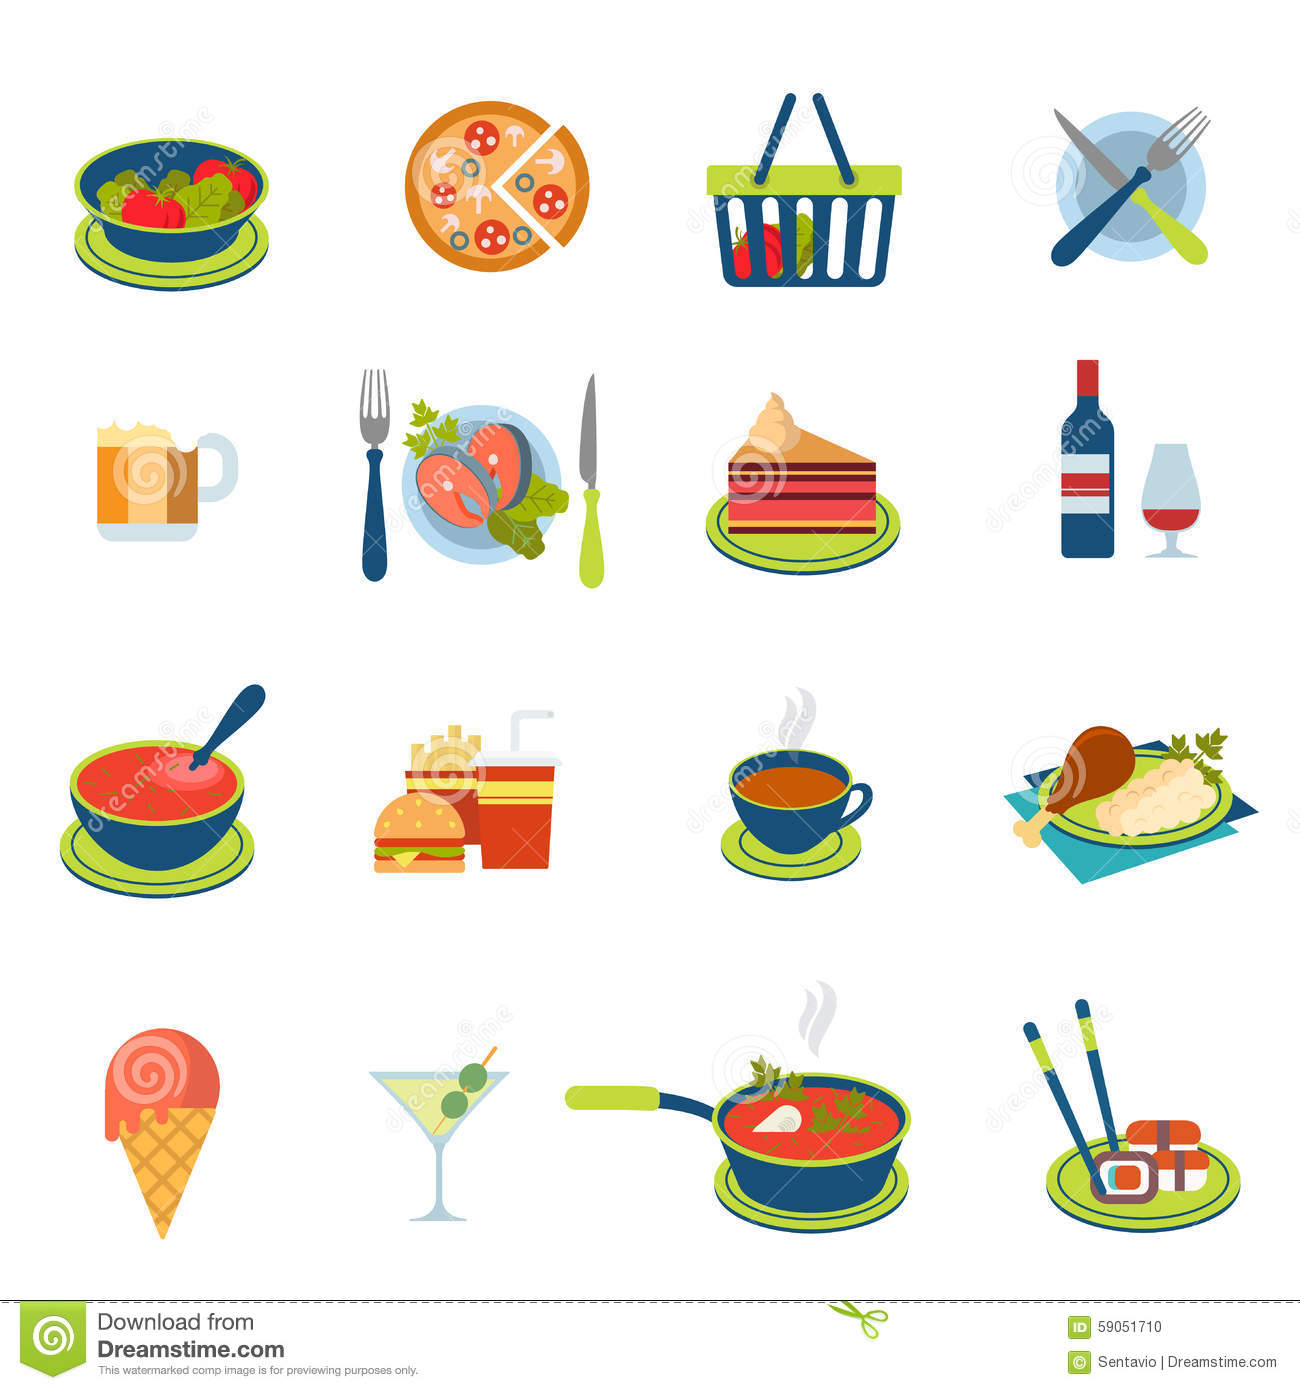 Flat vector food and drink infographic icon: restaurant menu